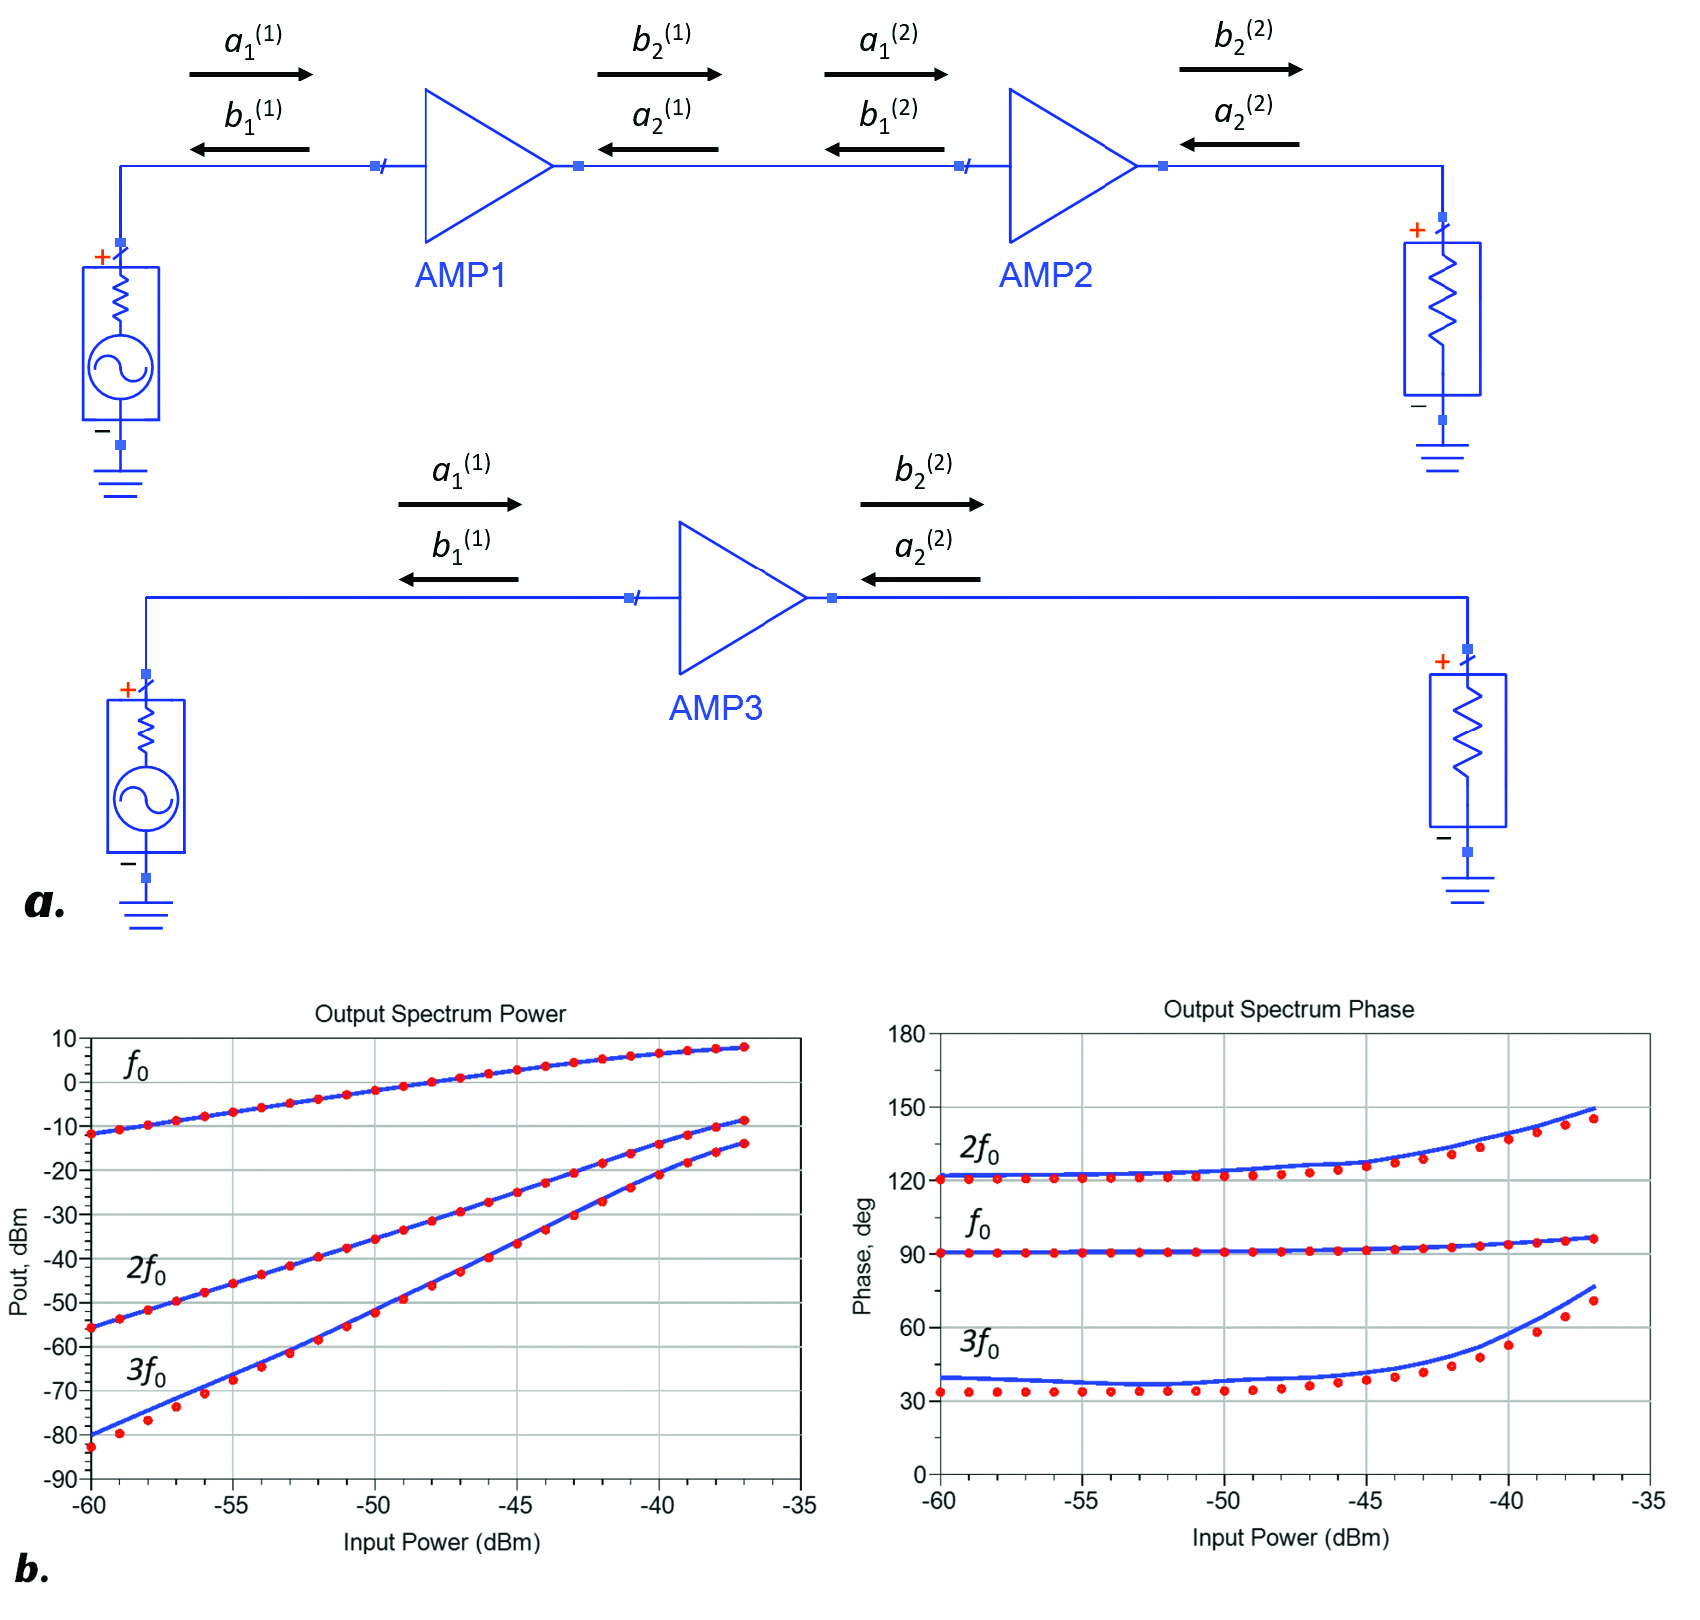 Advanced Microwave Amplifier Models For Design System Images Setup Schematics Results Figure 7 Schematic A And Simulated B Output Power Phase Of The Fundamental 2nd 3rd Harmonics When Two X Parameter